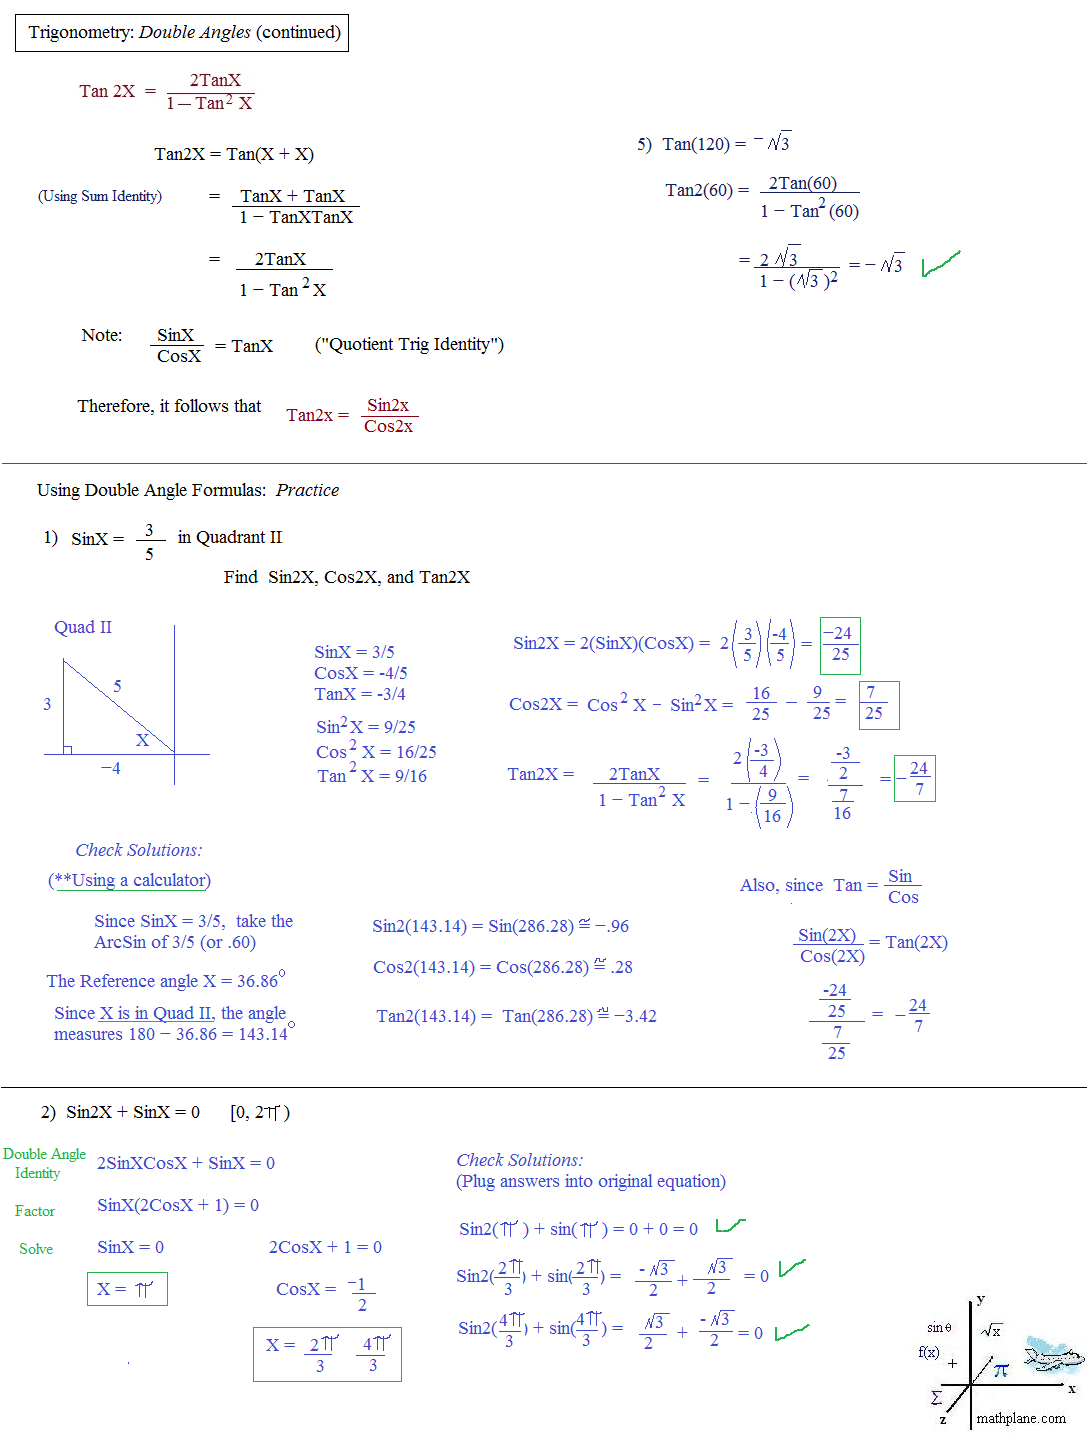 Workbooks inverse trigonometric functions problems worksheets : Math Plane - Trig Identities II - Double Angles